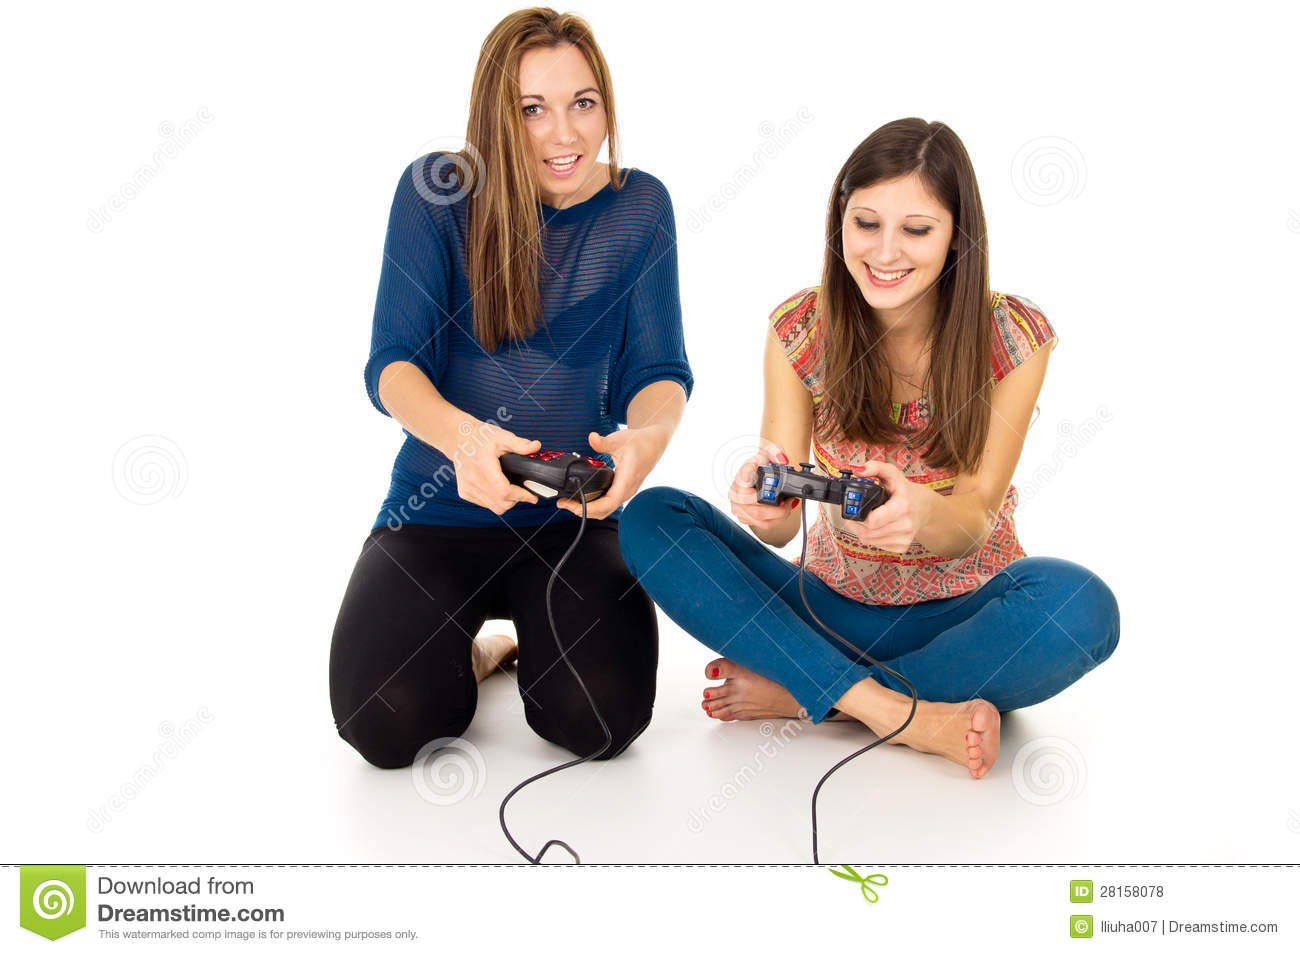 girls who play video games